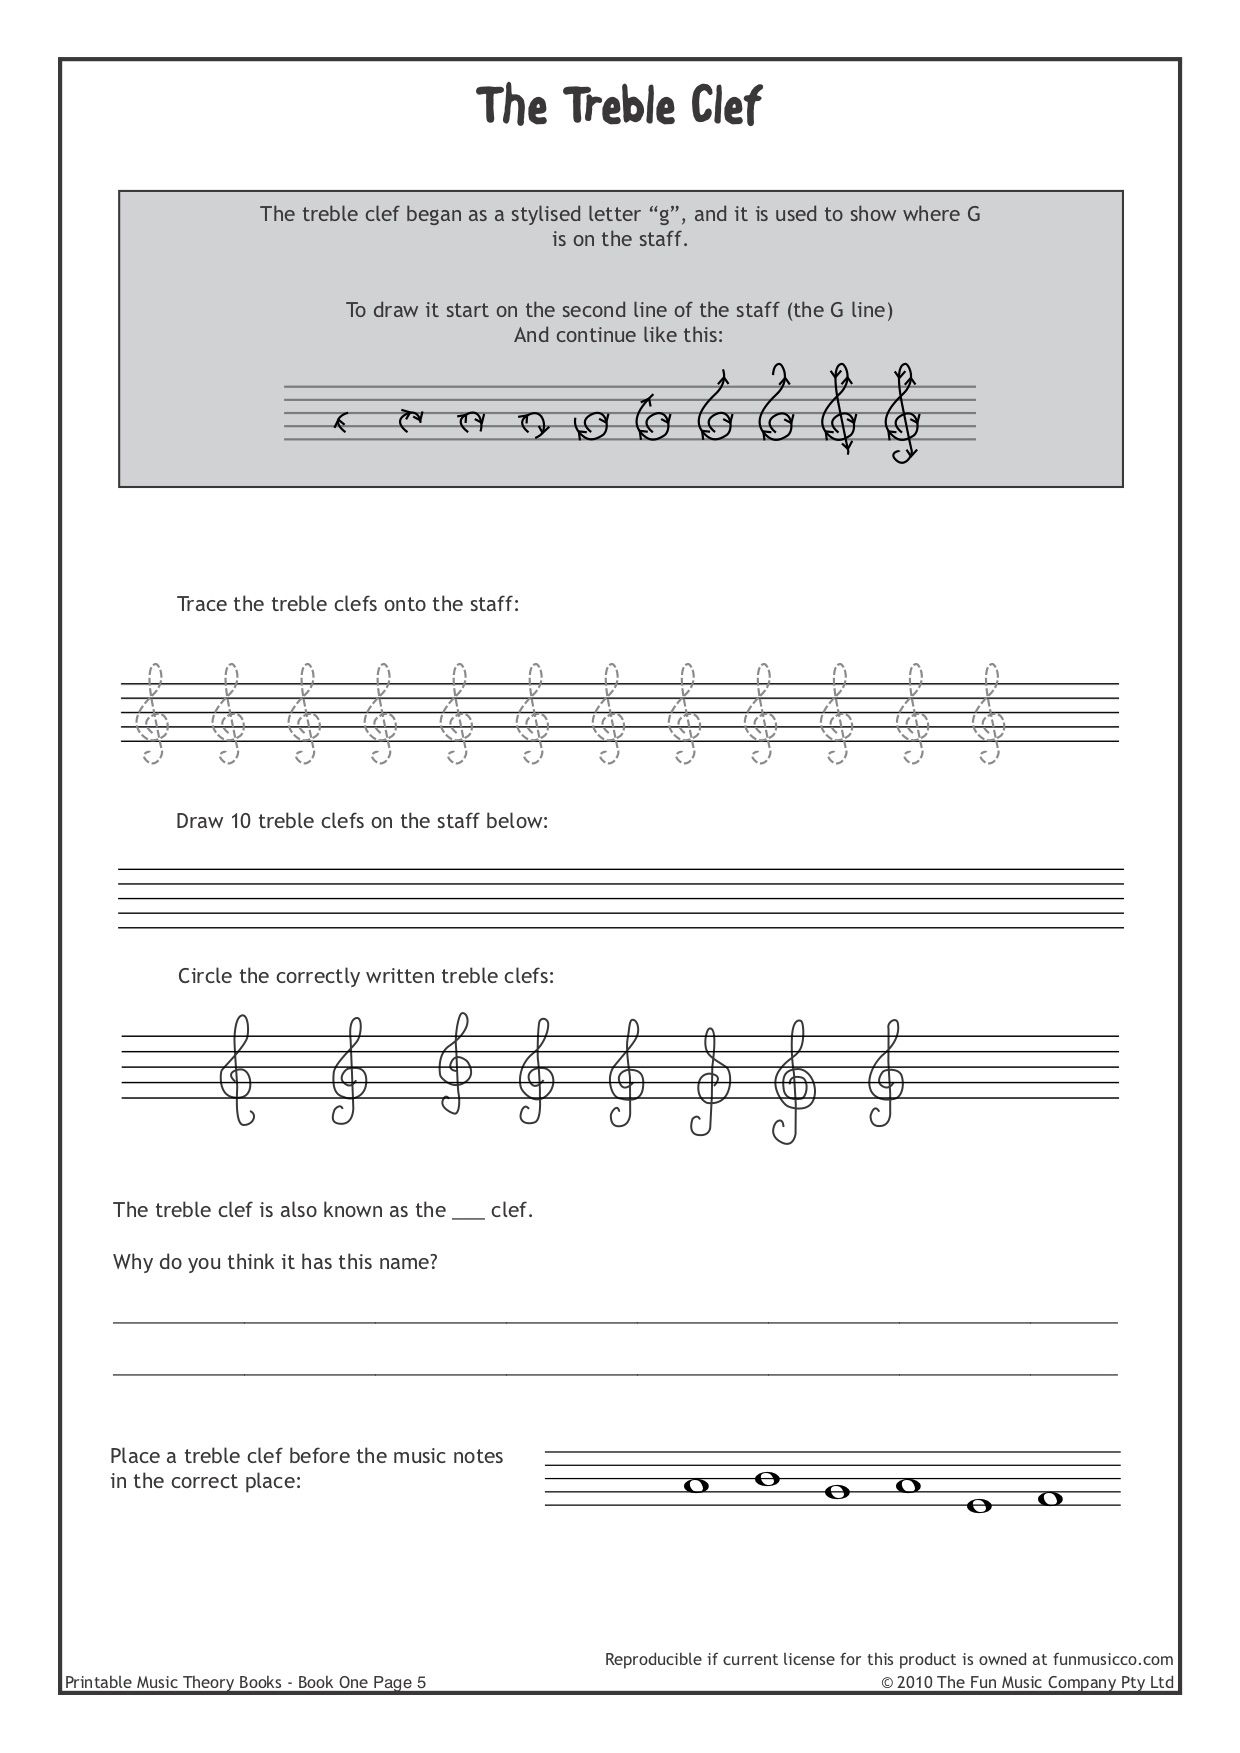 Downloadable Music Theory Worksheets At Funmusicco | Music | Free Printable Music Theory Worksheets